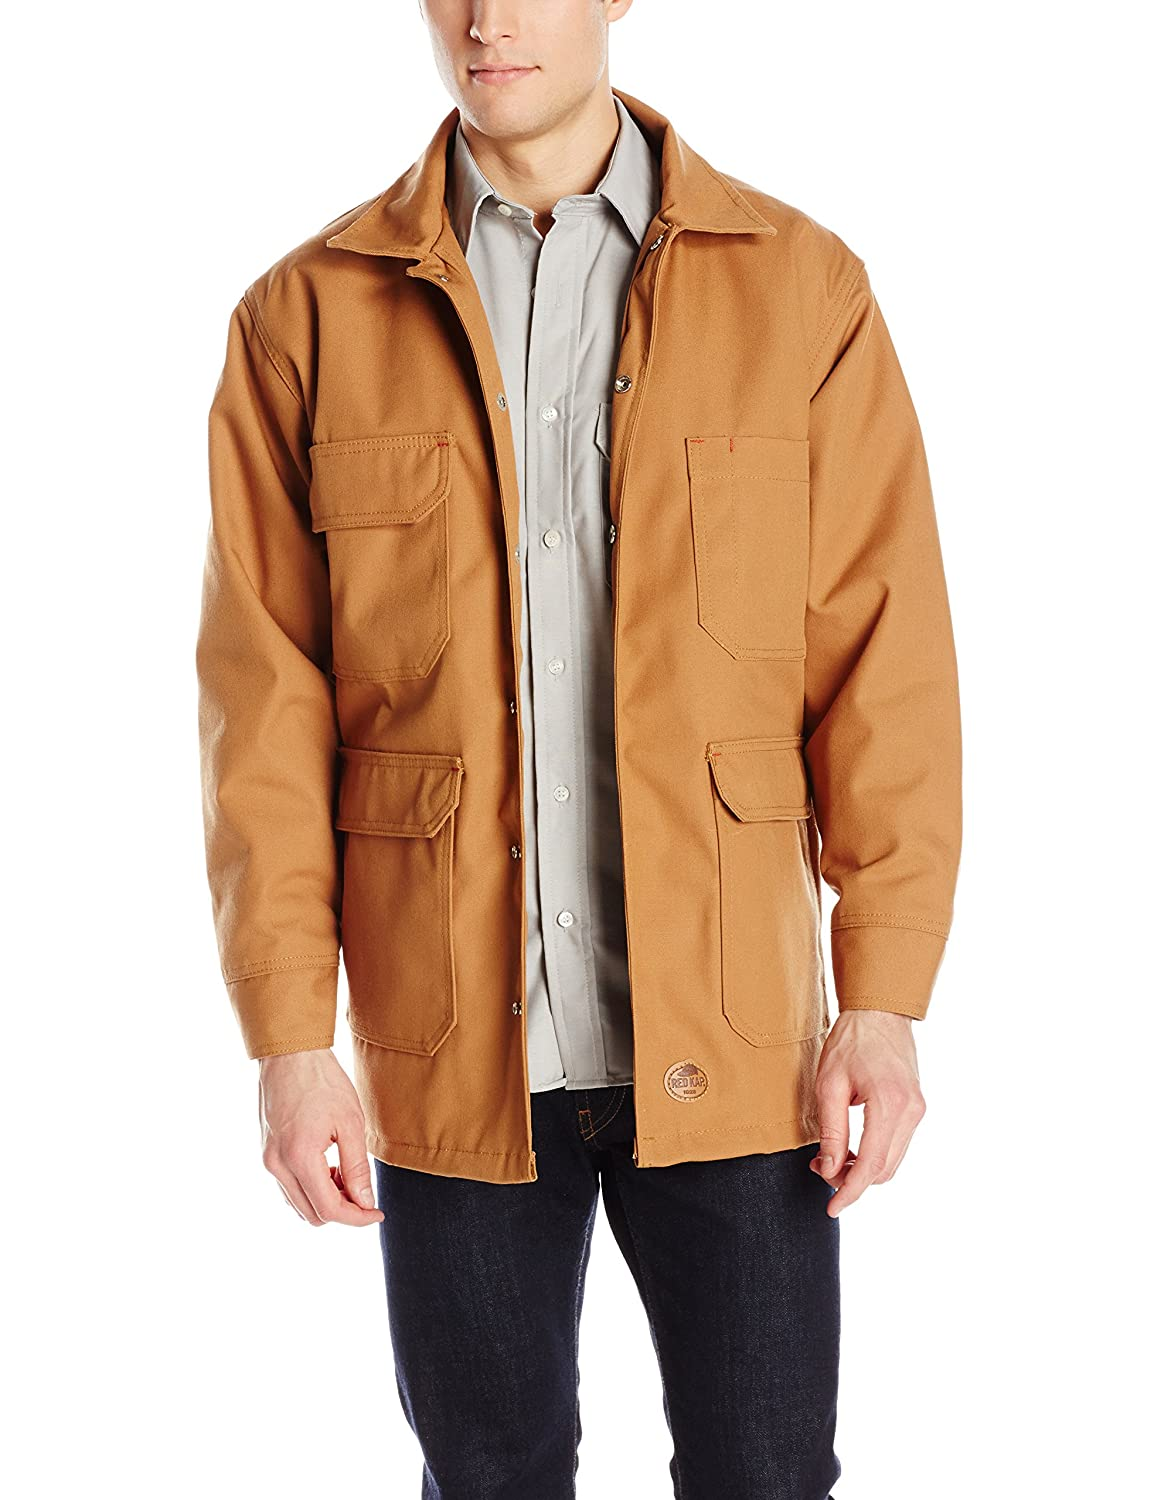 ee7a43ae1 Brown Duck Duck Duck Red Kap Men's Blended Duck Chore Coat ade599 ...